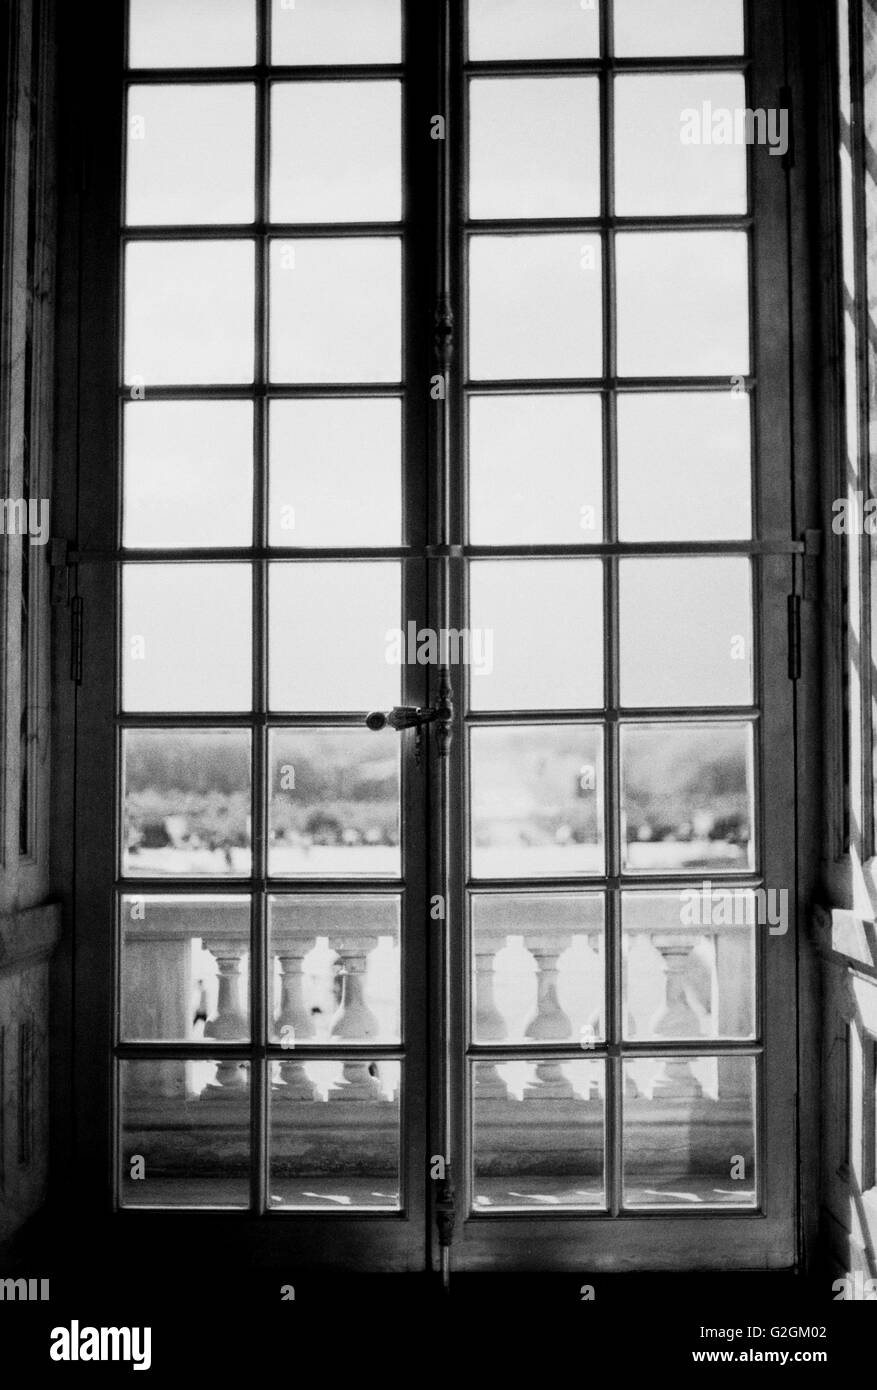 Closed glass doors palace of versalilles france stock photo closed glass doors palace of versalilles france planetlyrics Image collections